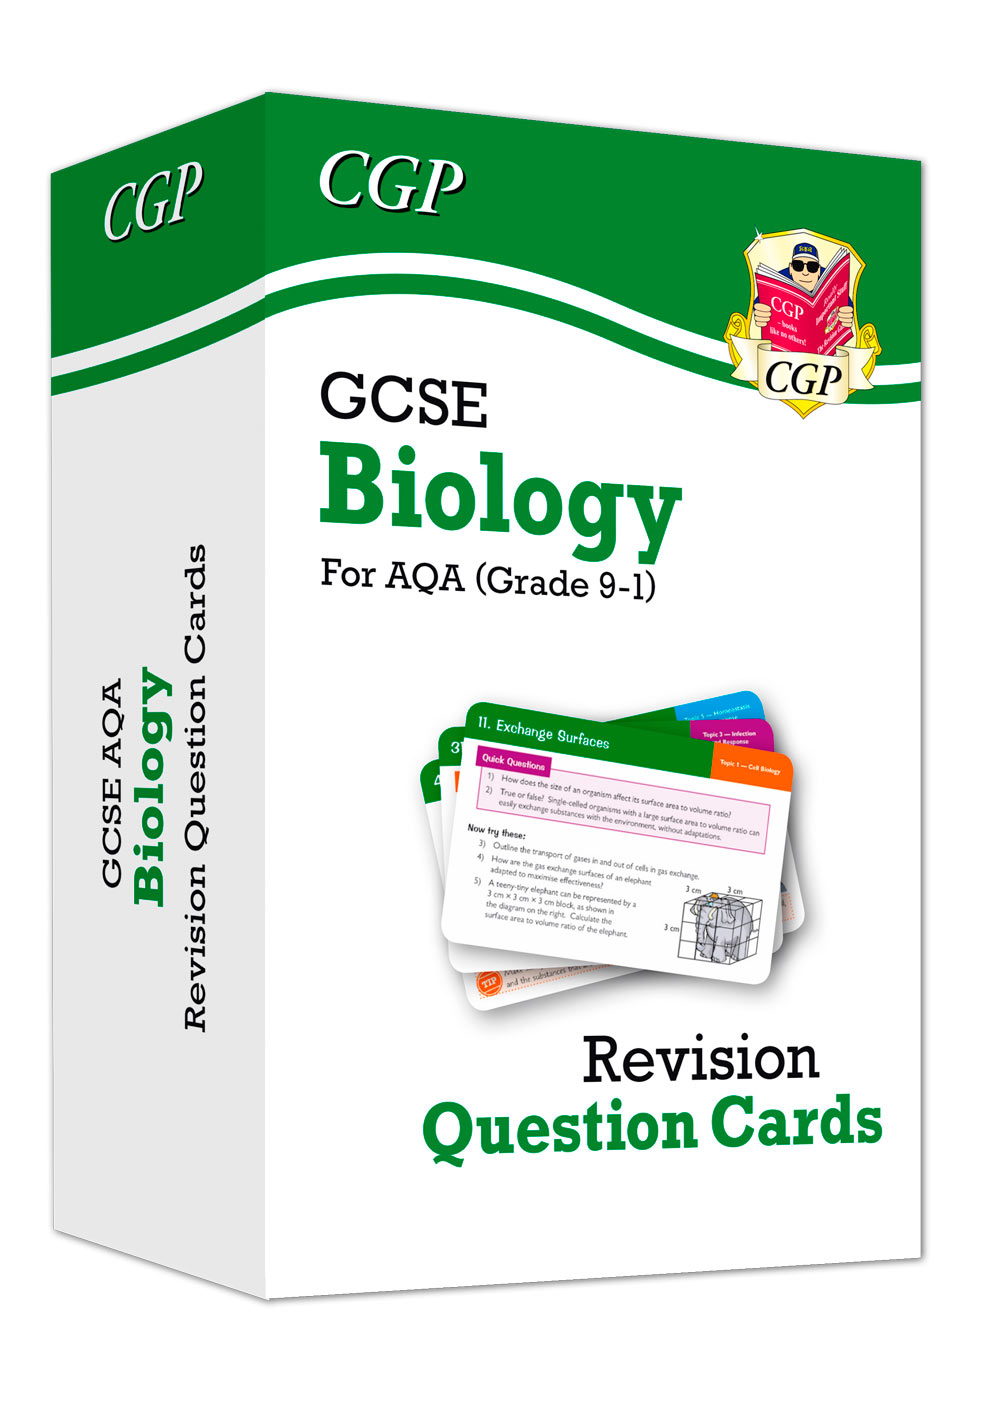 BAF41 - New 9-1 GCSE Biology AQA Revision Question Cards